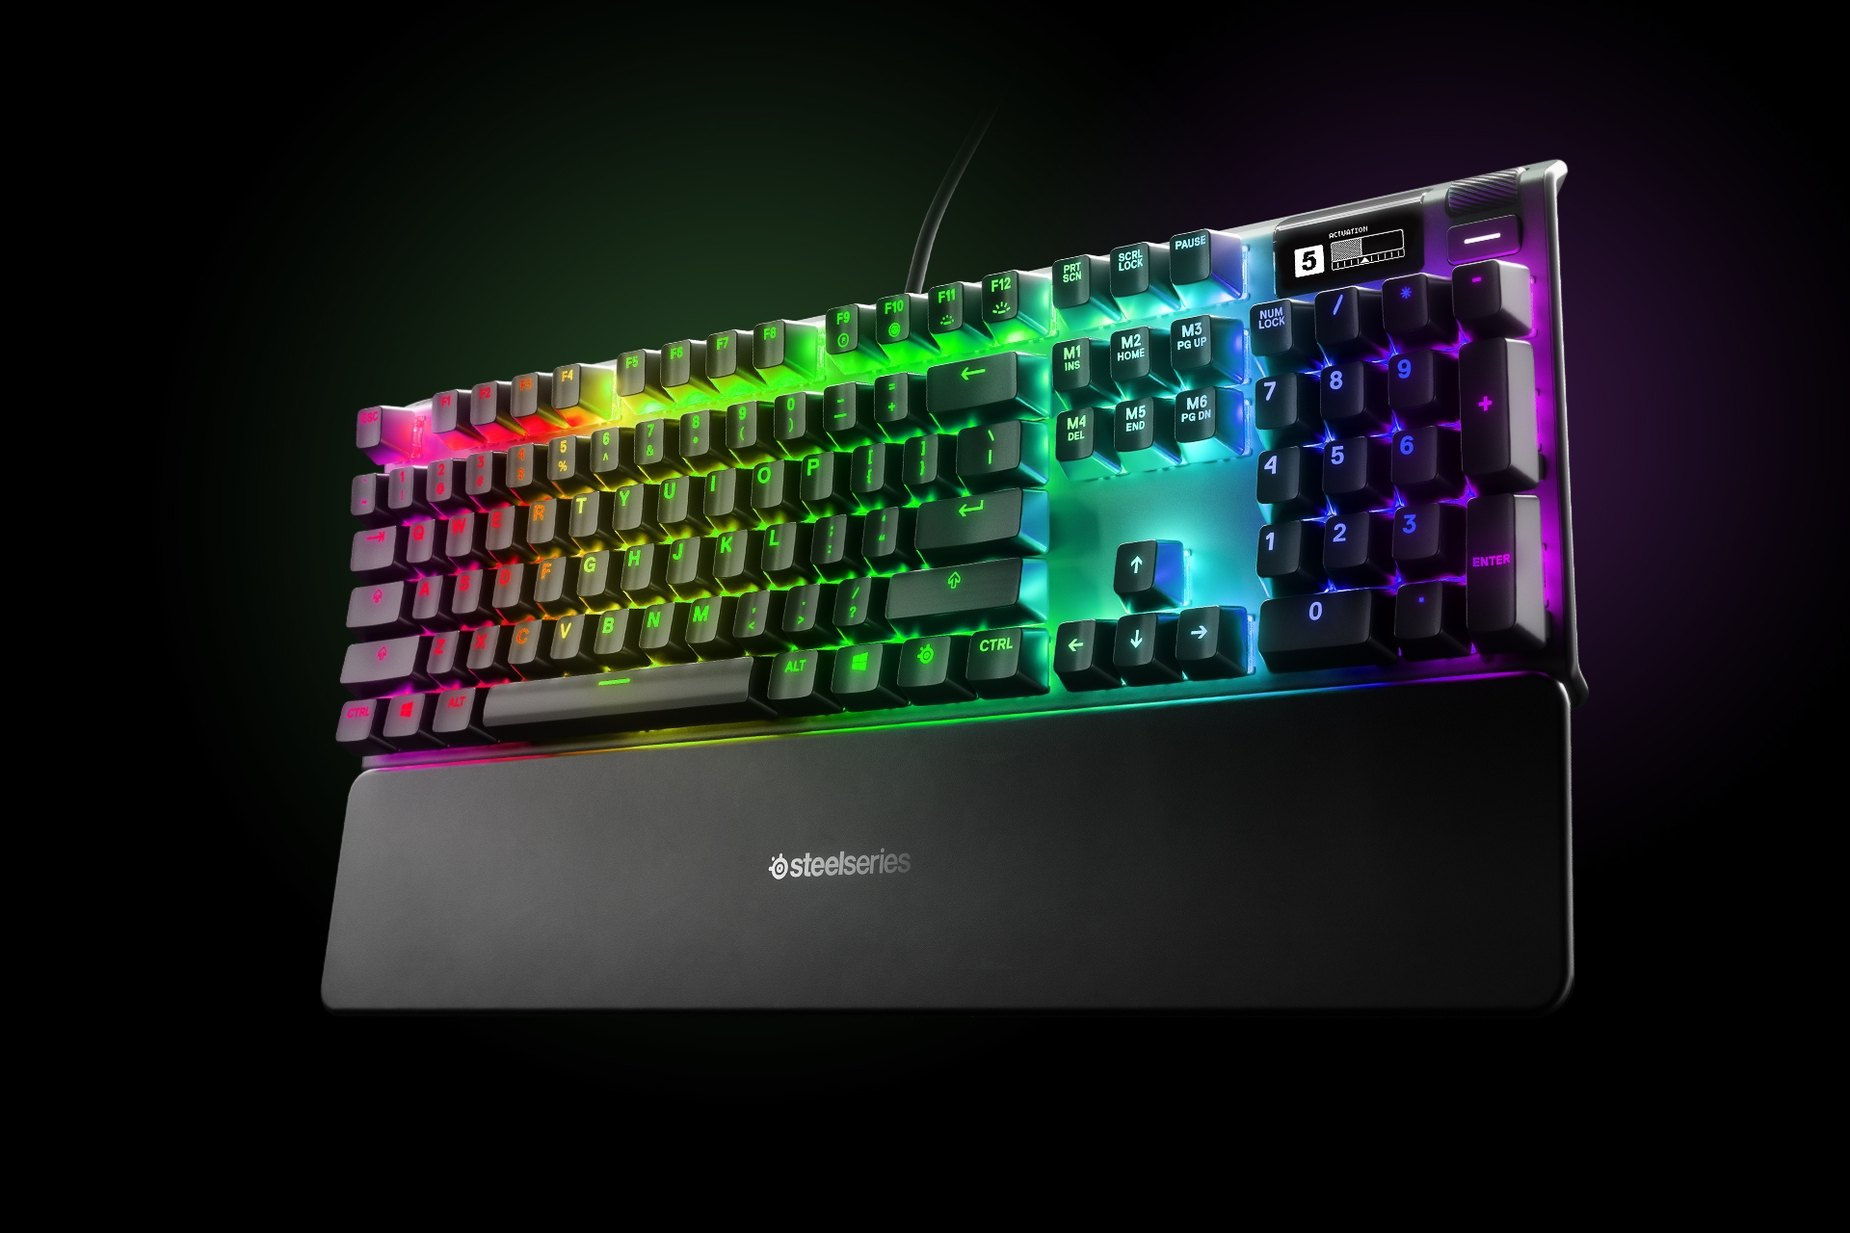 Almanca - Apex Pro gaming keyboard with the illumination lit up on dark background, also shows the OLED screen and controls used to change settings, switch actuation, and adjust audio